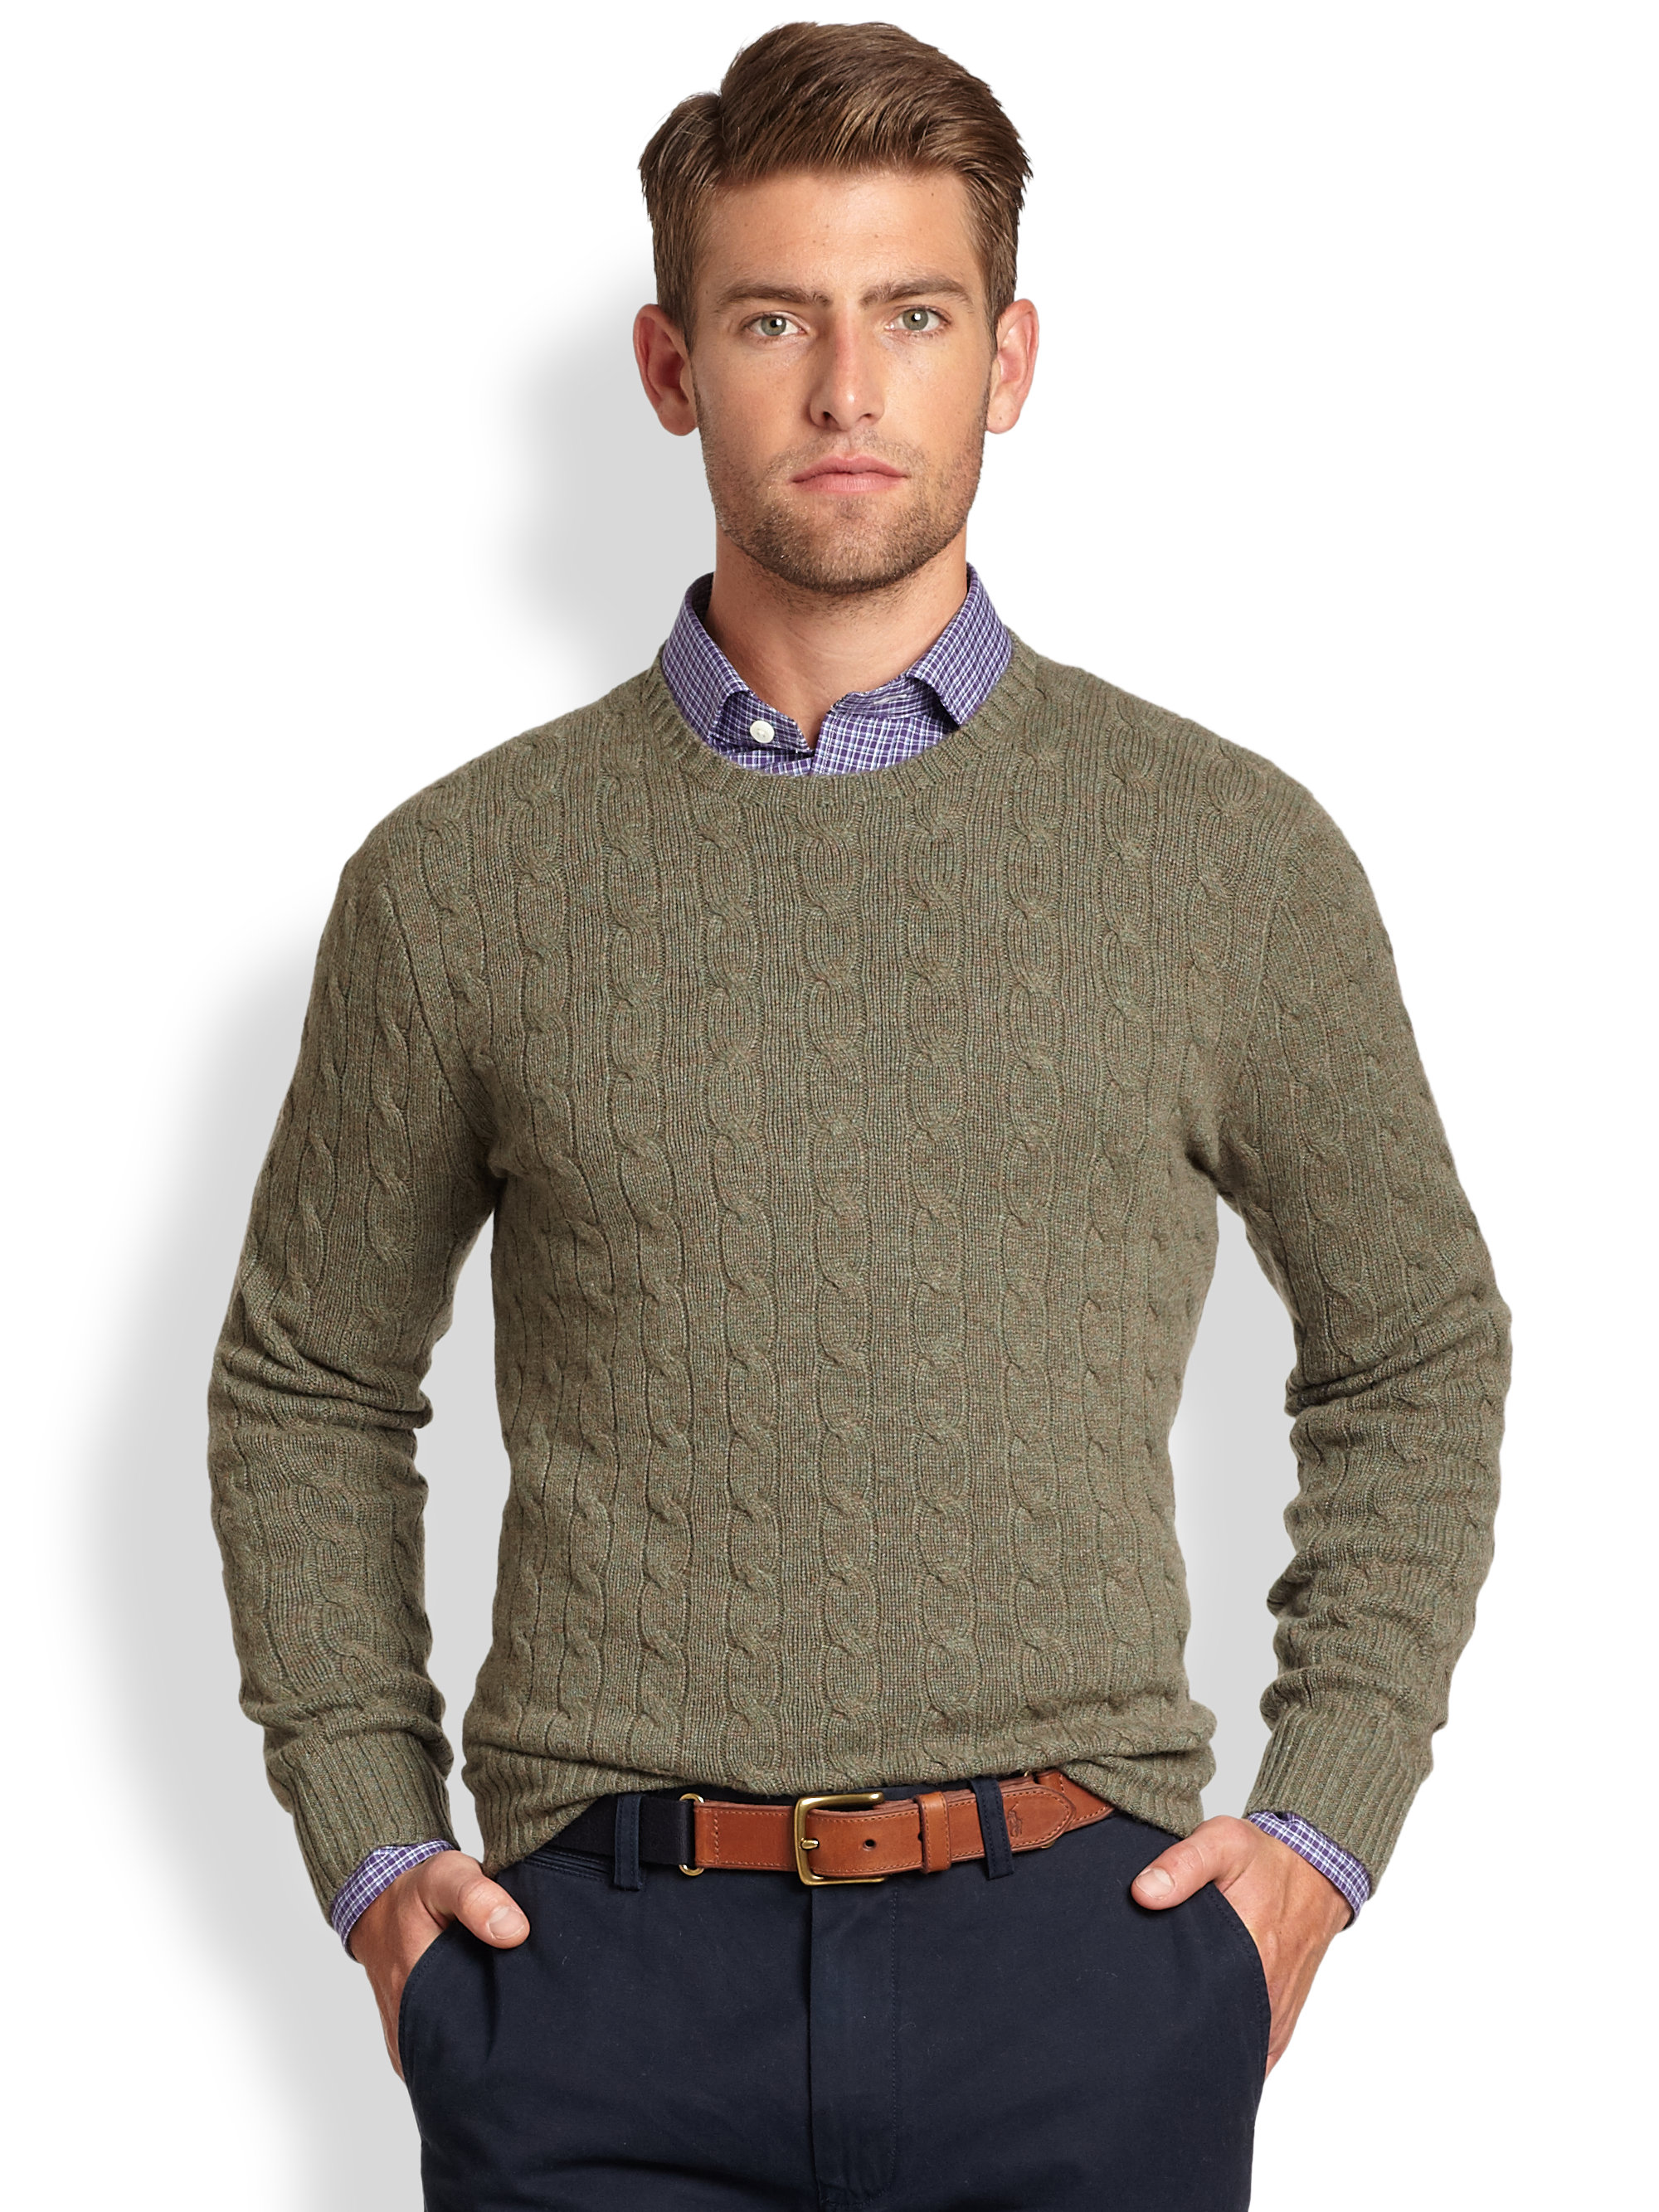 c1c04b0a7e3 Lyst - Polo Ralph Lauren Cable Knit Cashmere Crewneck Sweater in ...